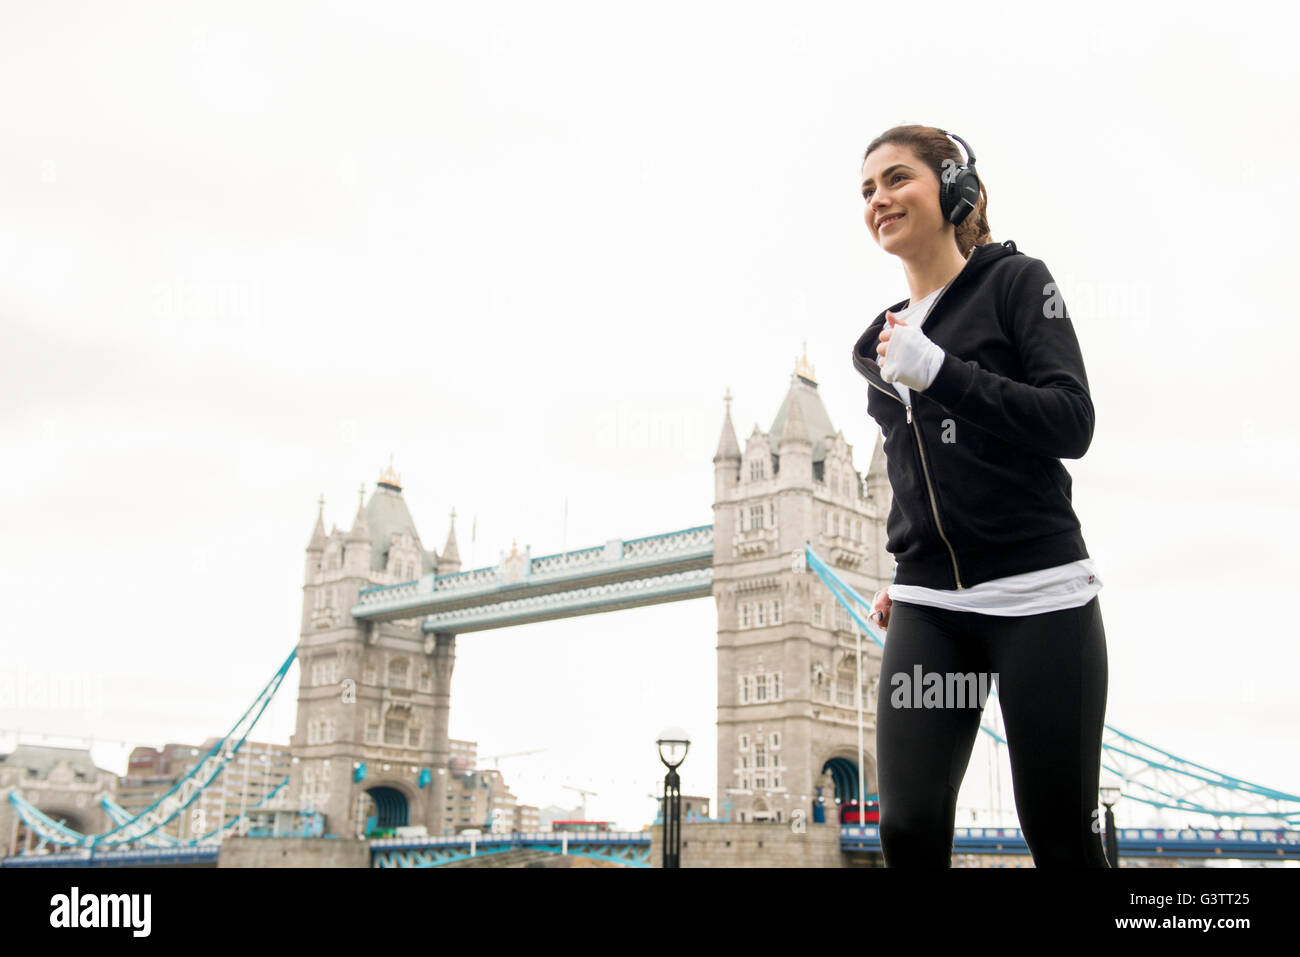 A young woman jogging past Tower Bridge in London. - Stock Image